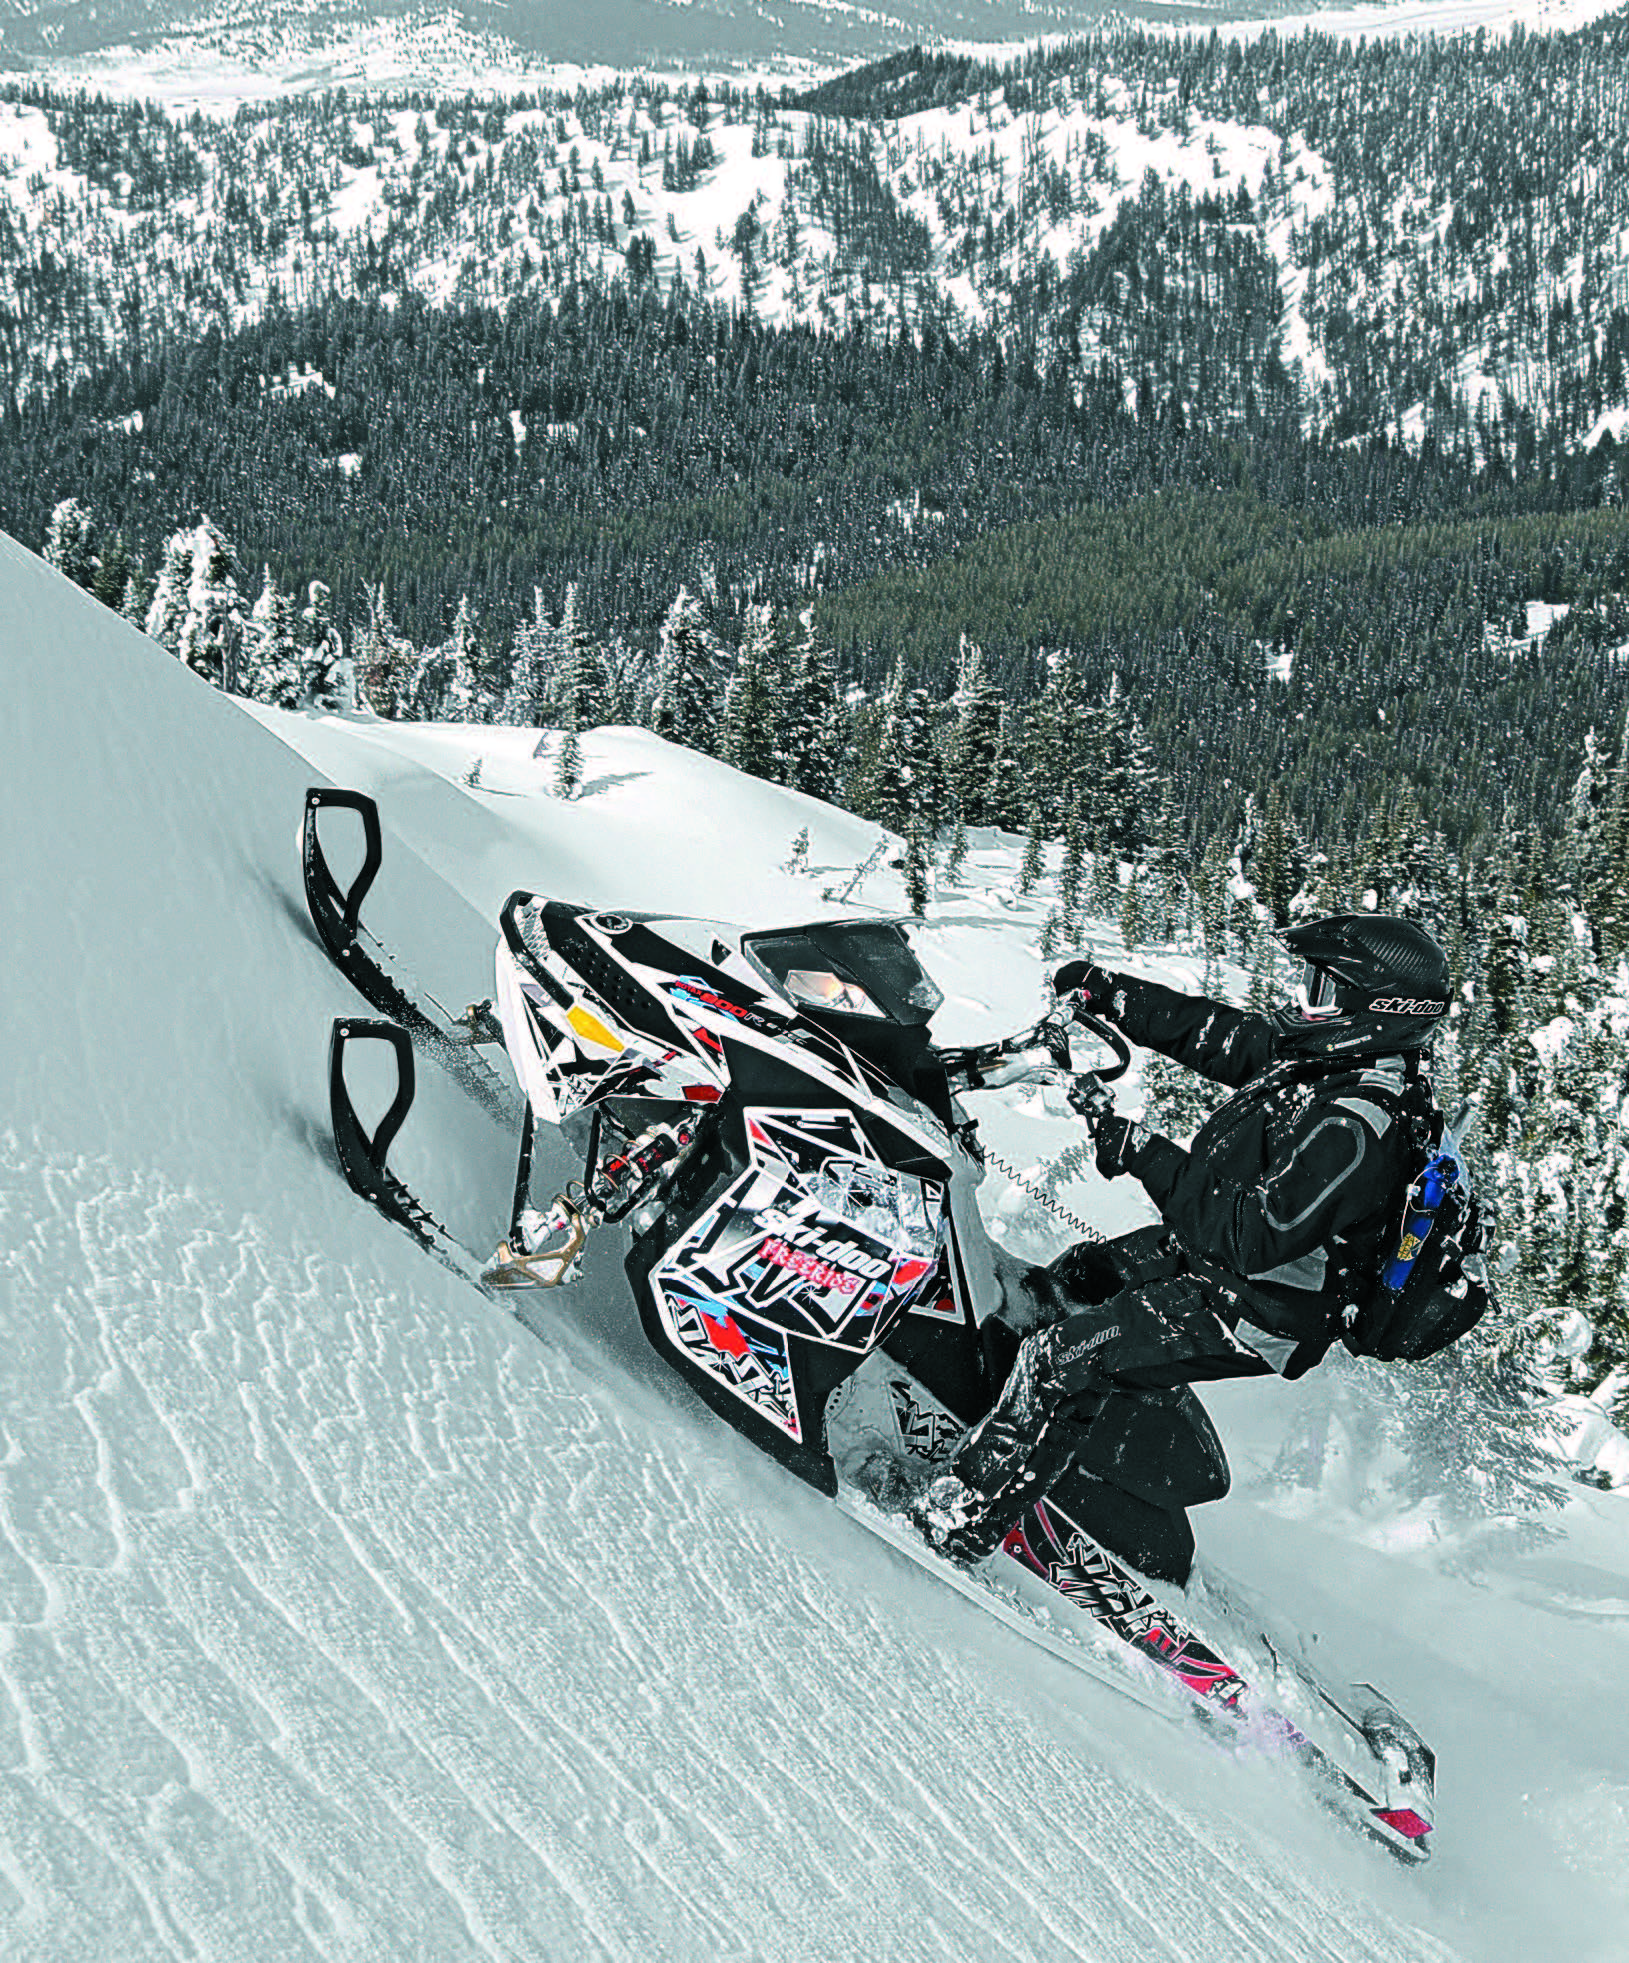 Sledheads Backcountry Riding Instruction Manual Snowest Magazine - This is what happens when you fly a snowmobile off a cliff